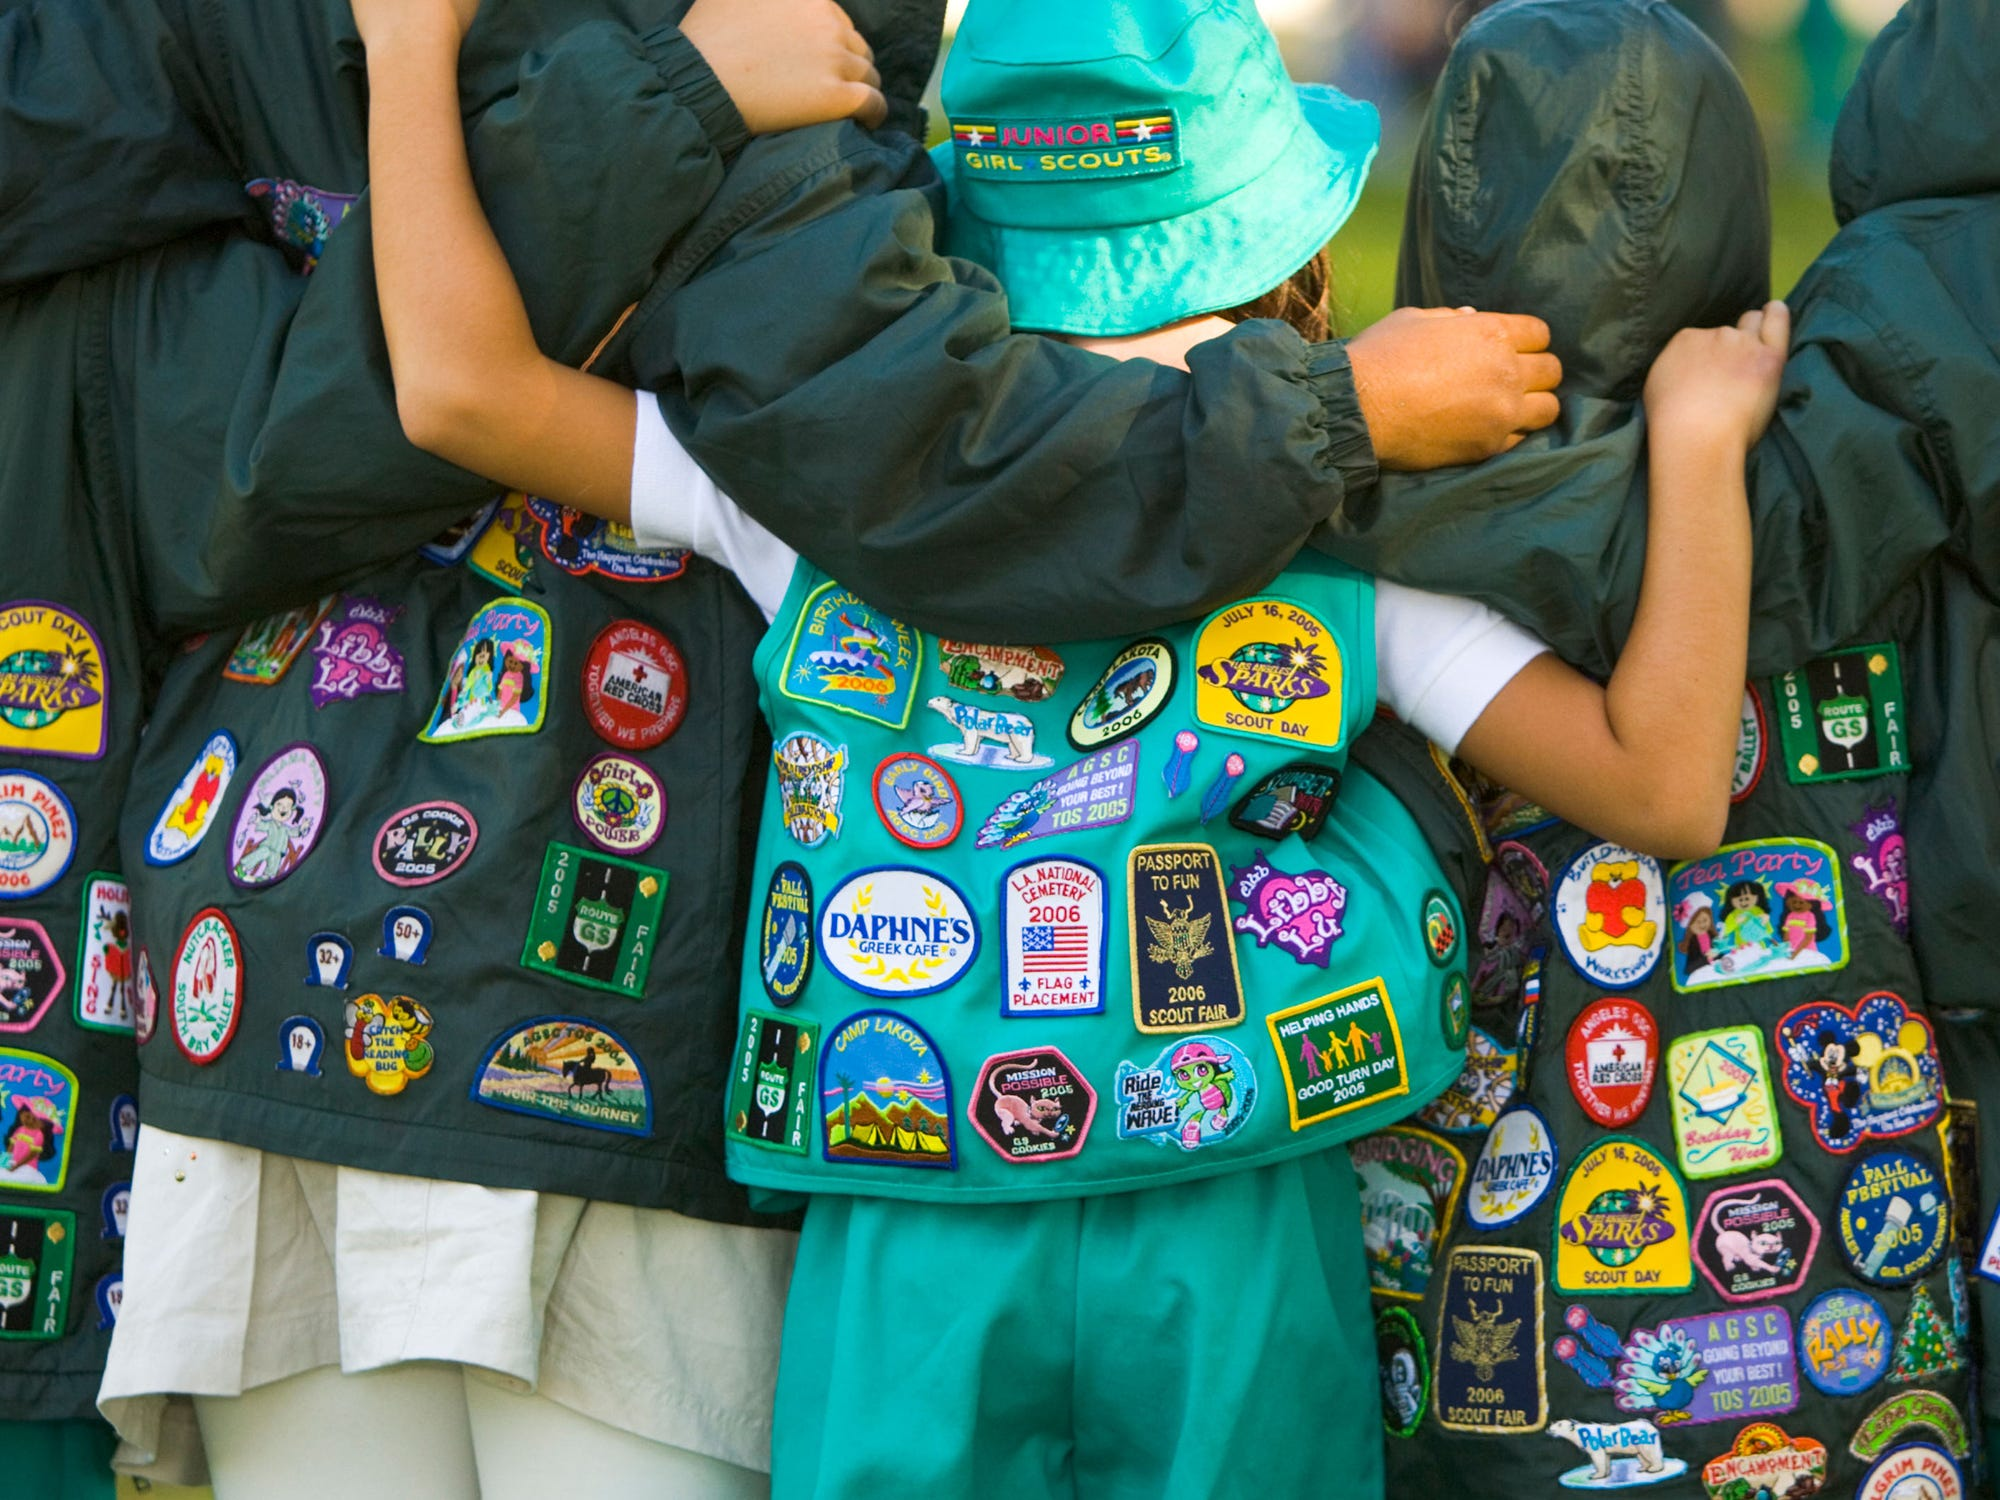 14 most beautiful scouts in history